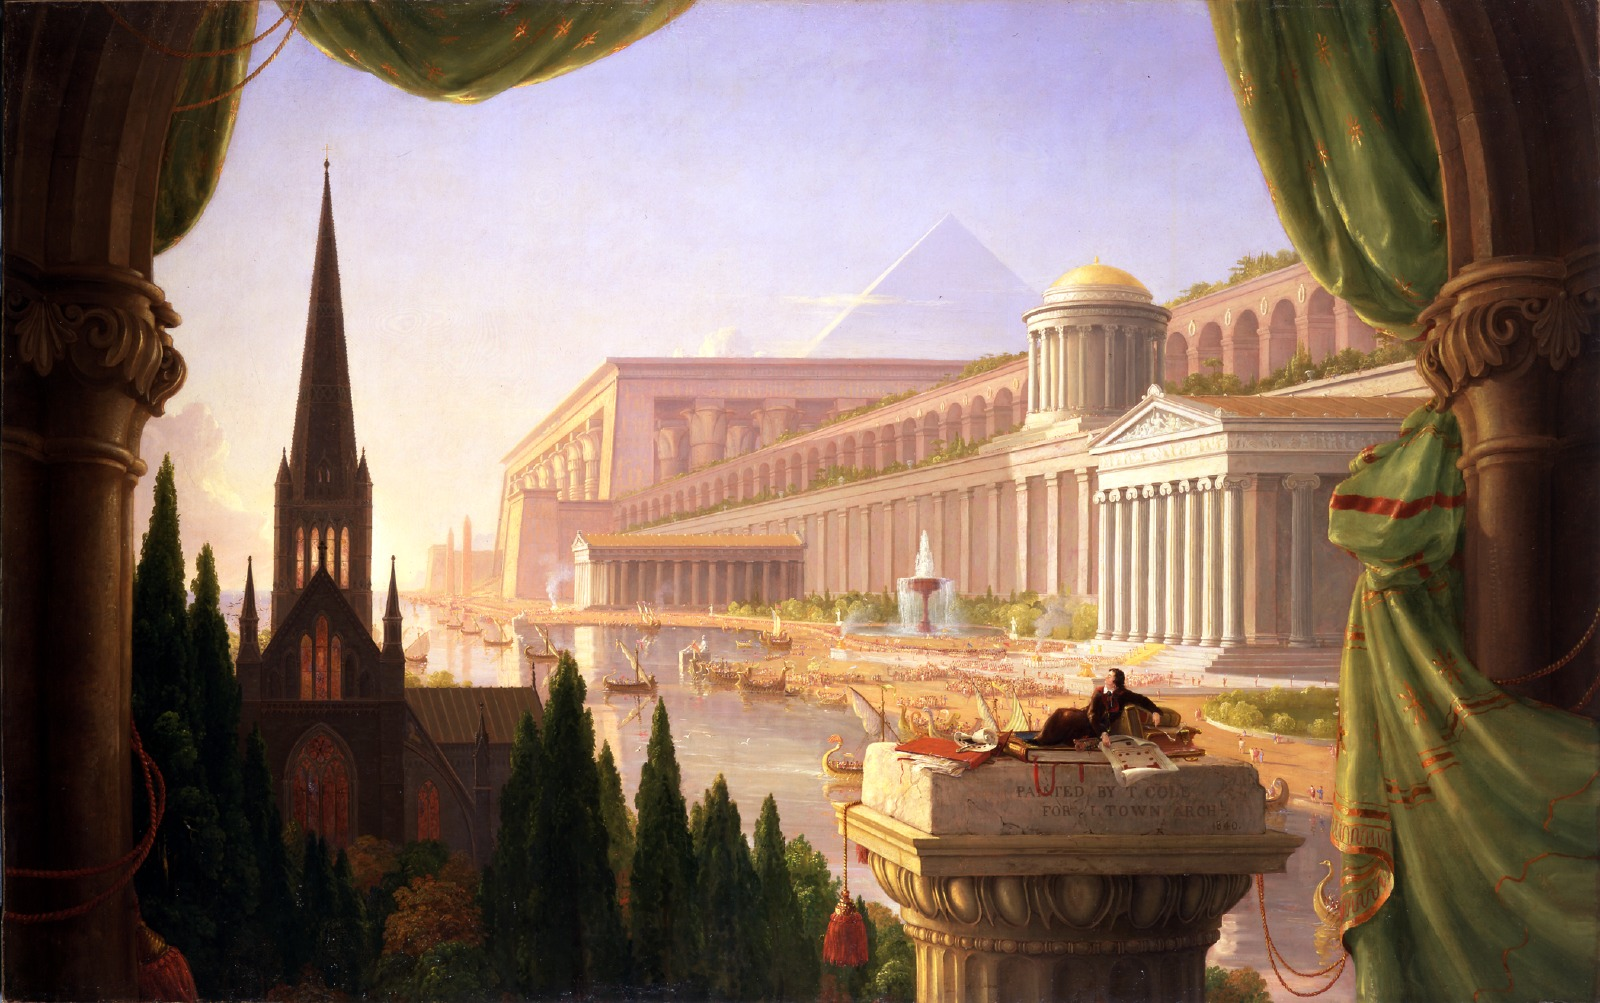 2016 Exhibition – Thomas Cole: The Artist as Architect